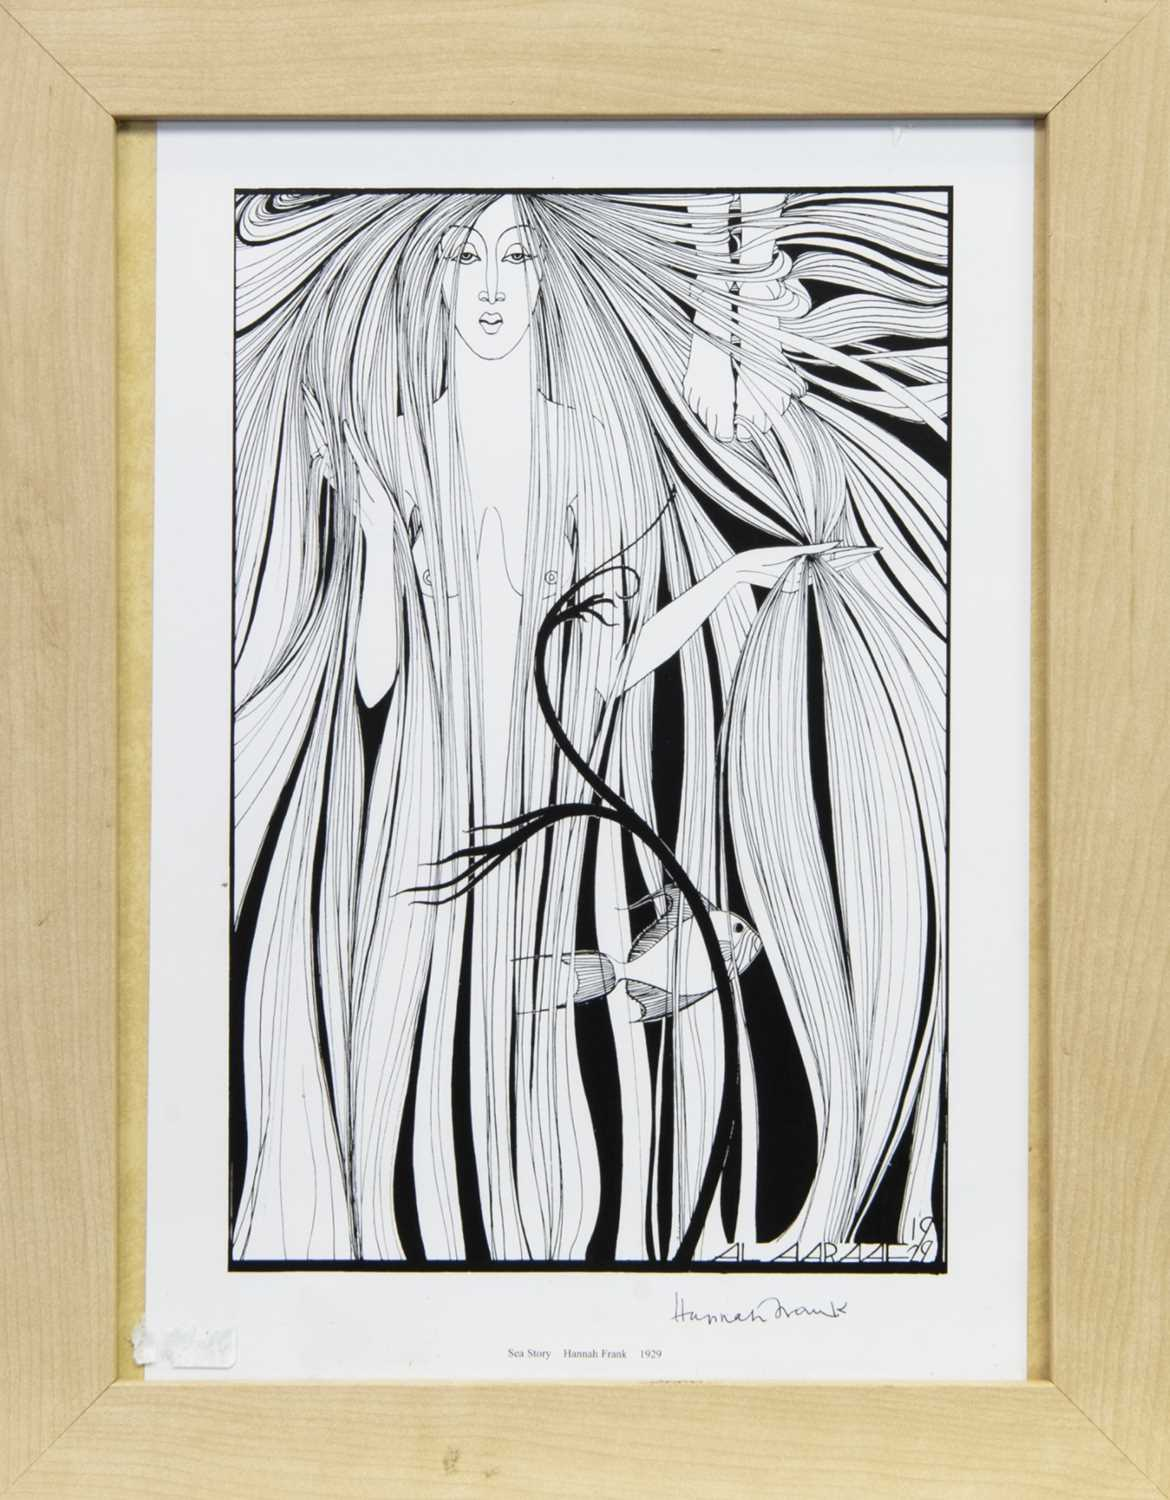 Lot 539 - SEA STORY, A LITHOGRAPH BY HANNAH FRANK